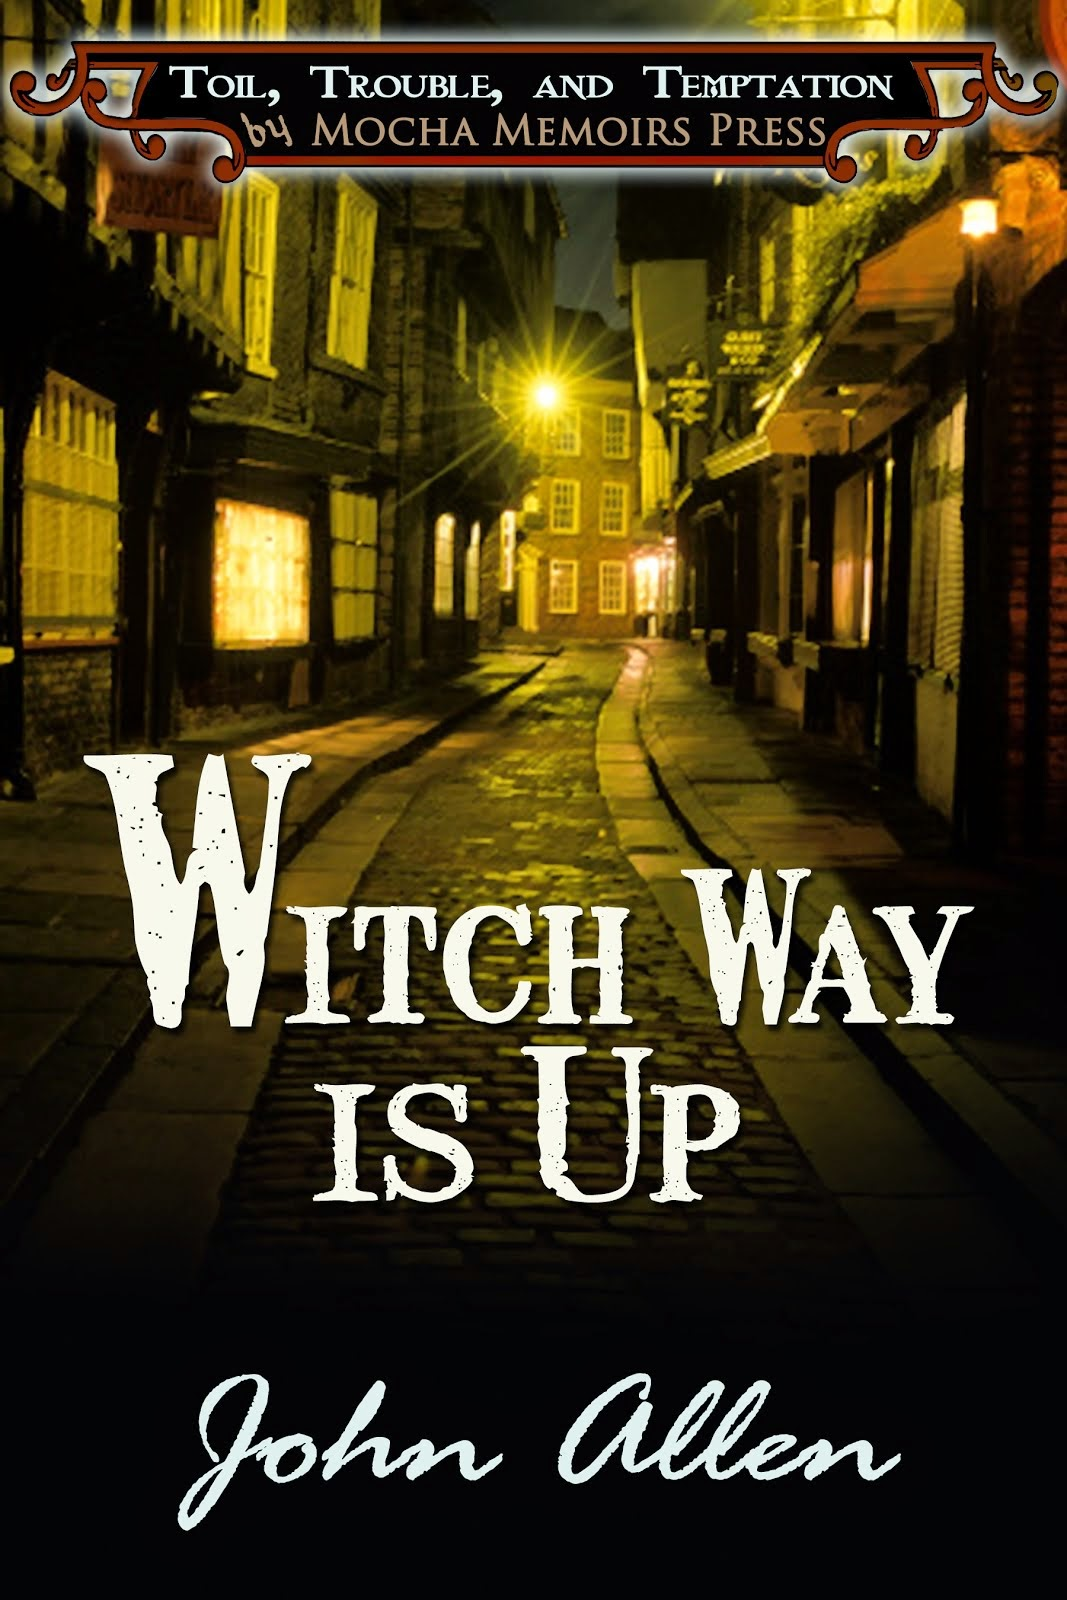 Witch Way is Up